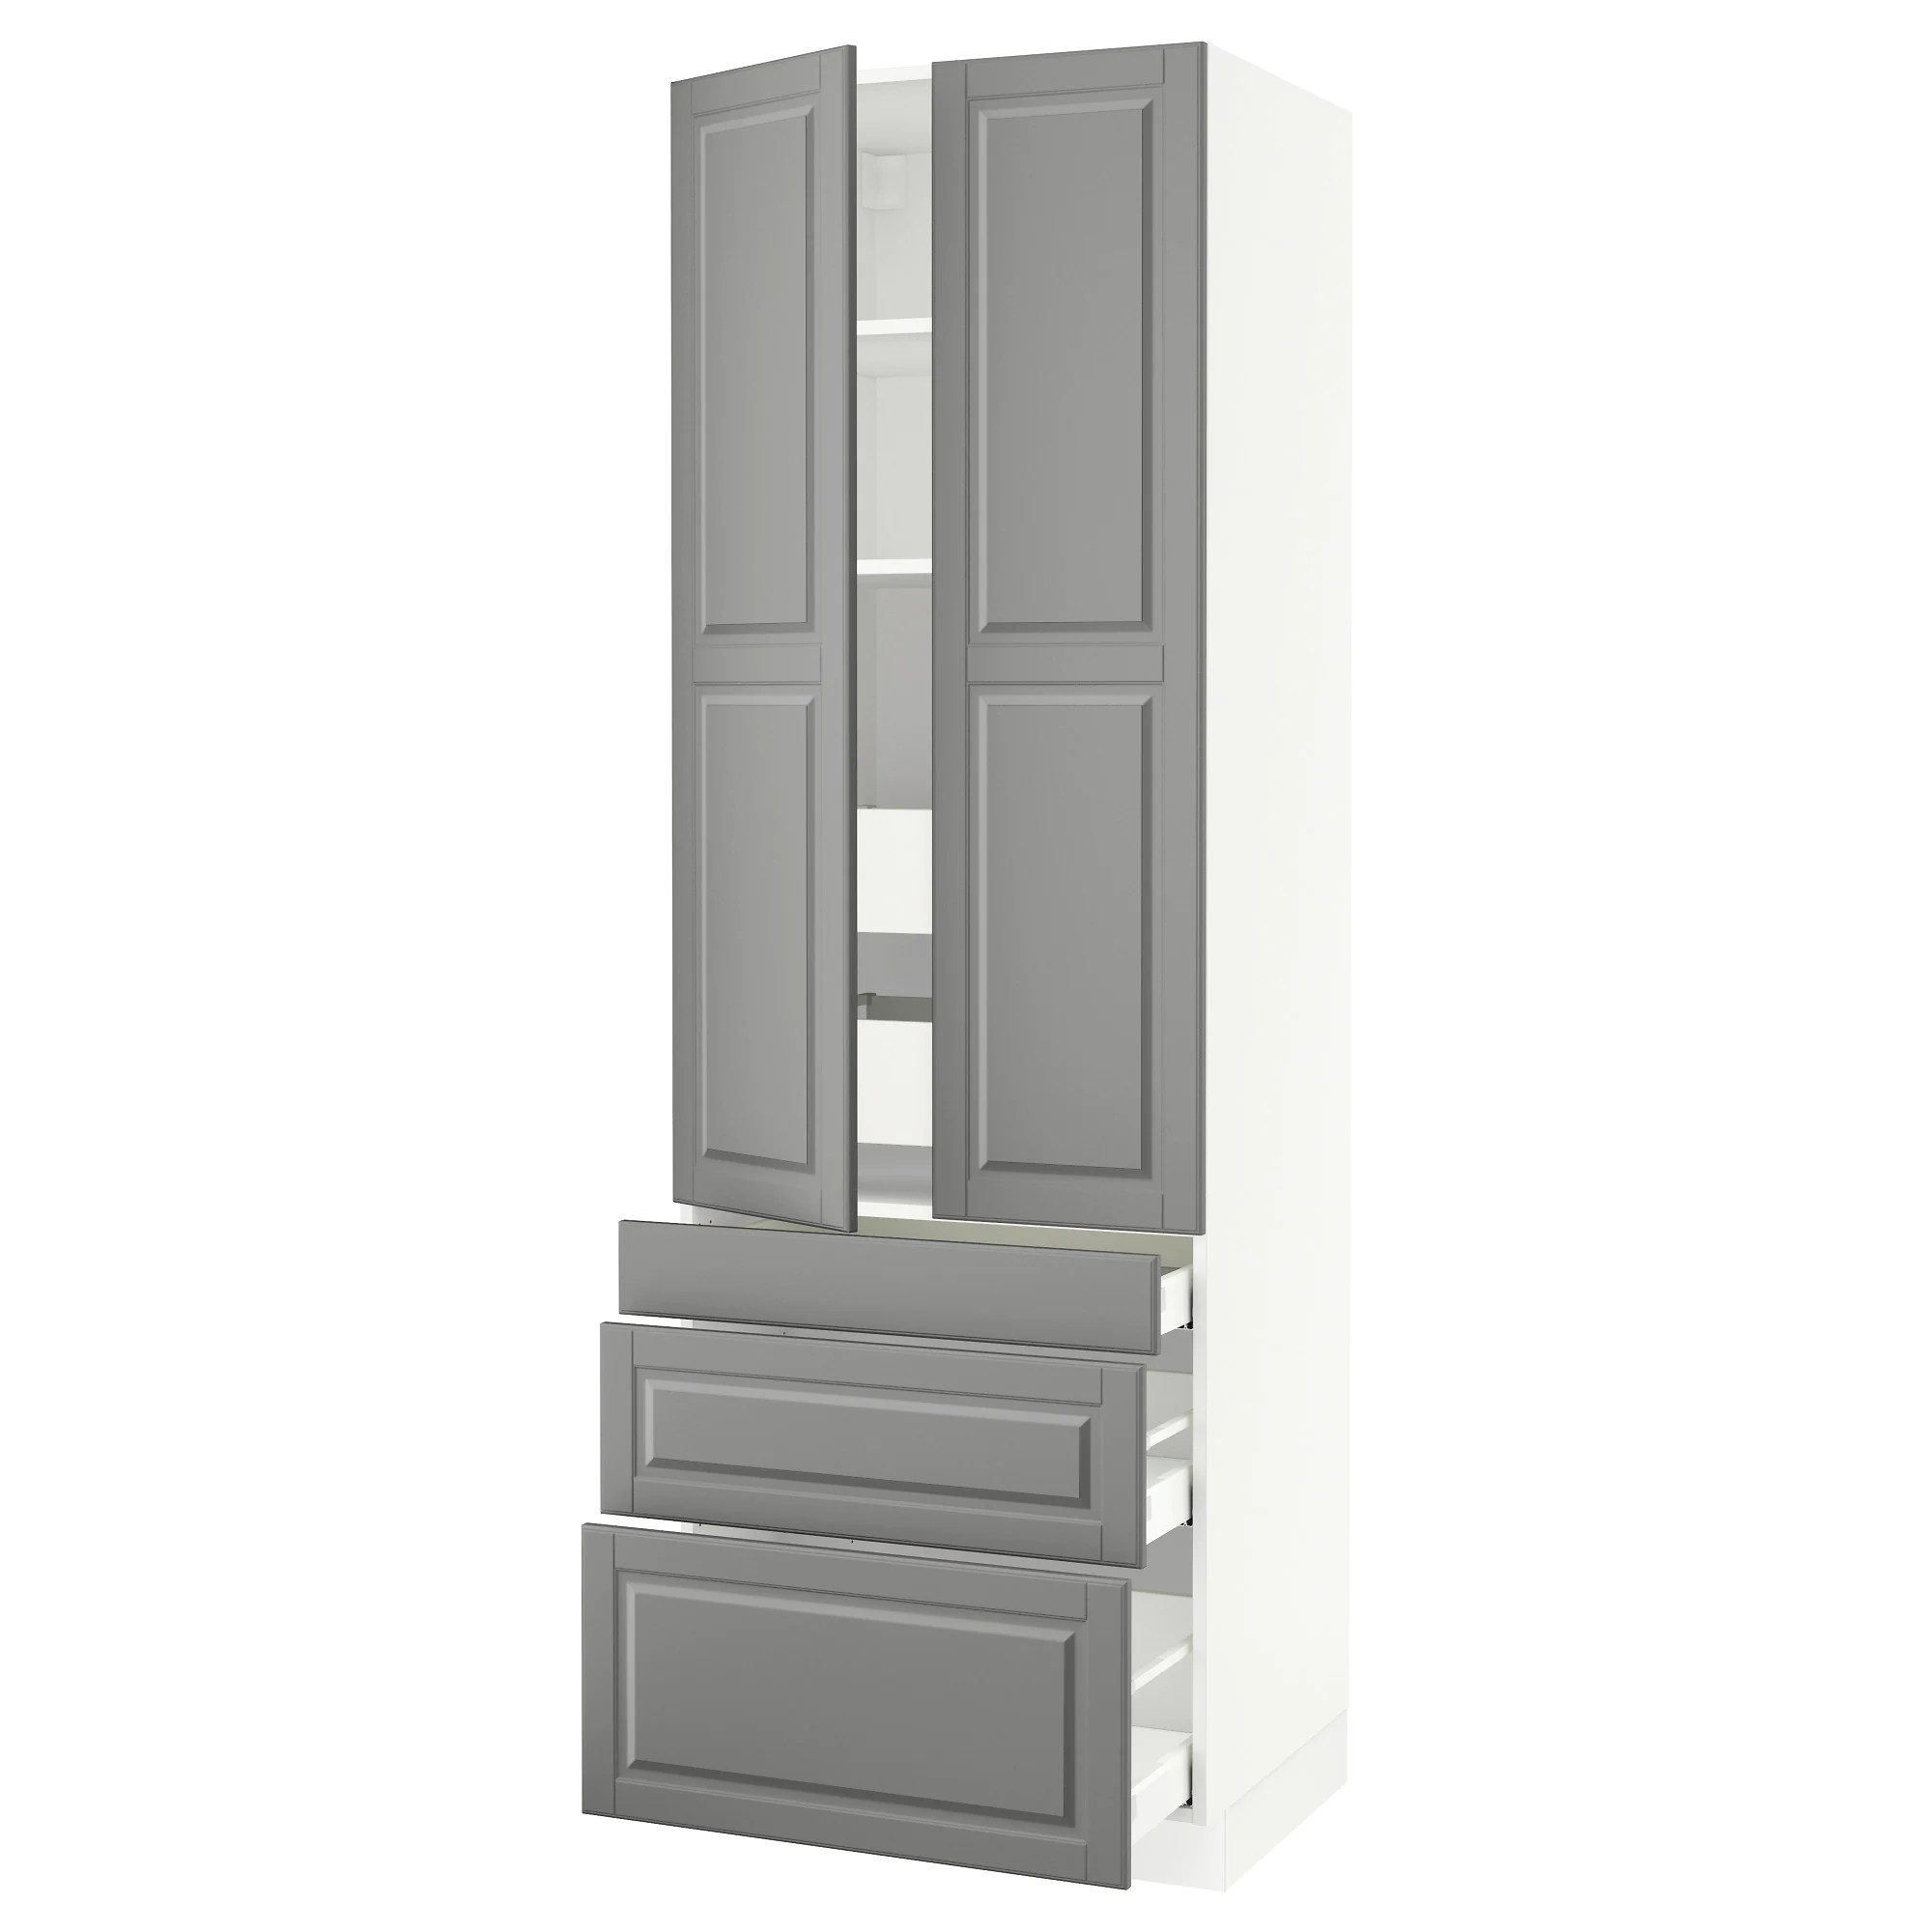 ikea cabinets kitchen SEKTION high cabinet w 2 doors 5 drawers white Maximera Bodbyn gray